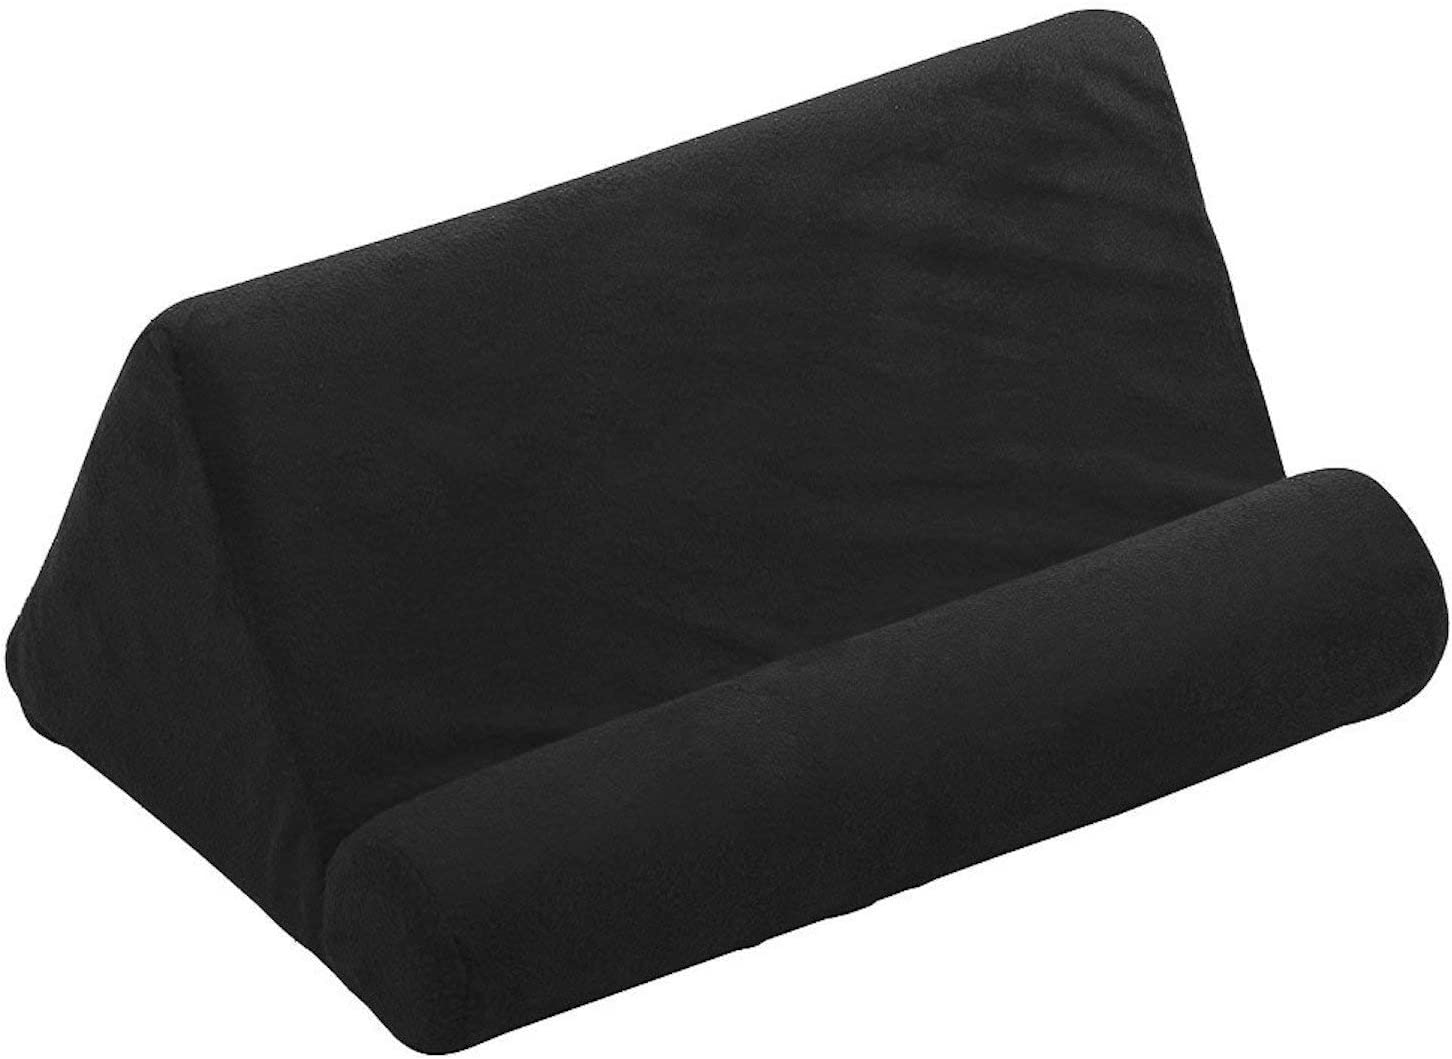 Tablet Sofa - Lap Cushion Tablet, Keyboard, Laptop Holder - Black